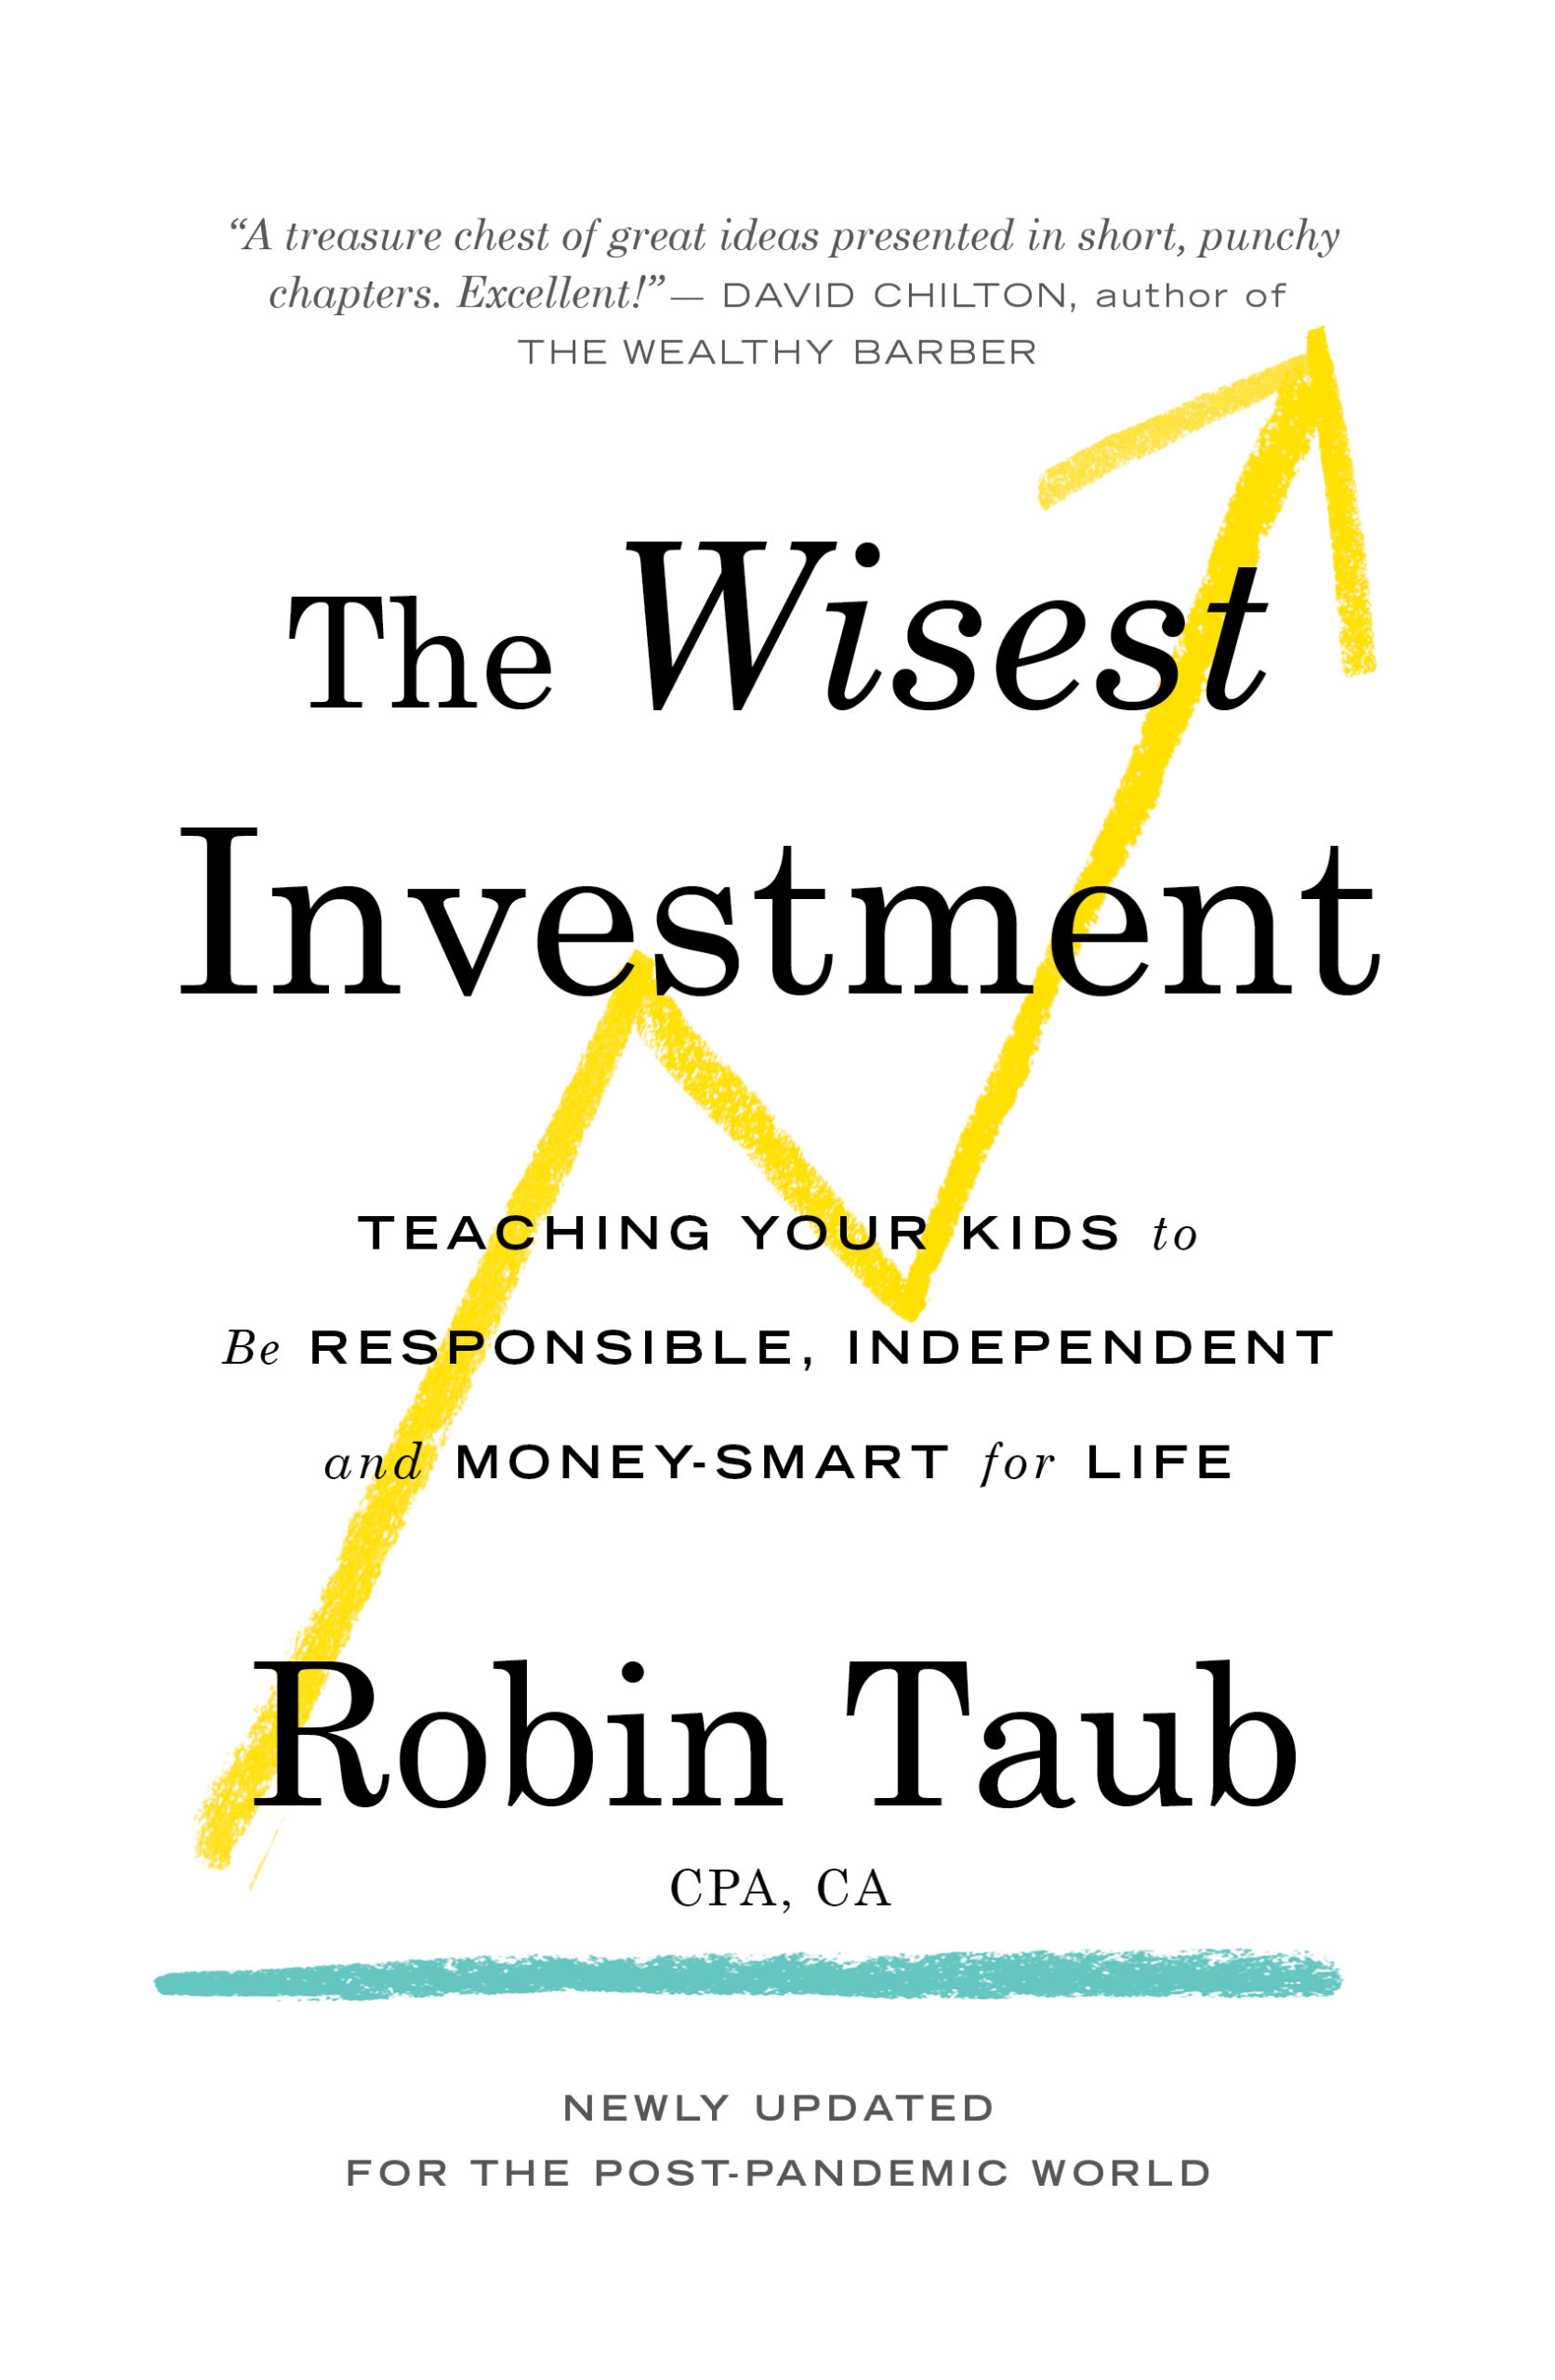 The Wisest Investment